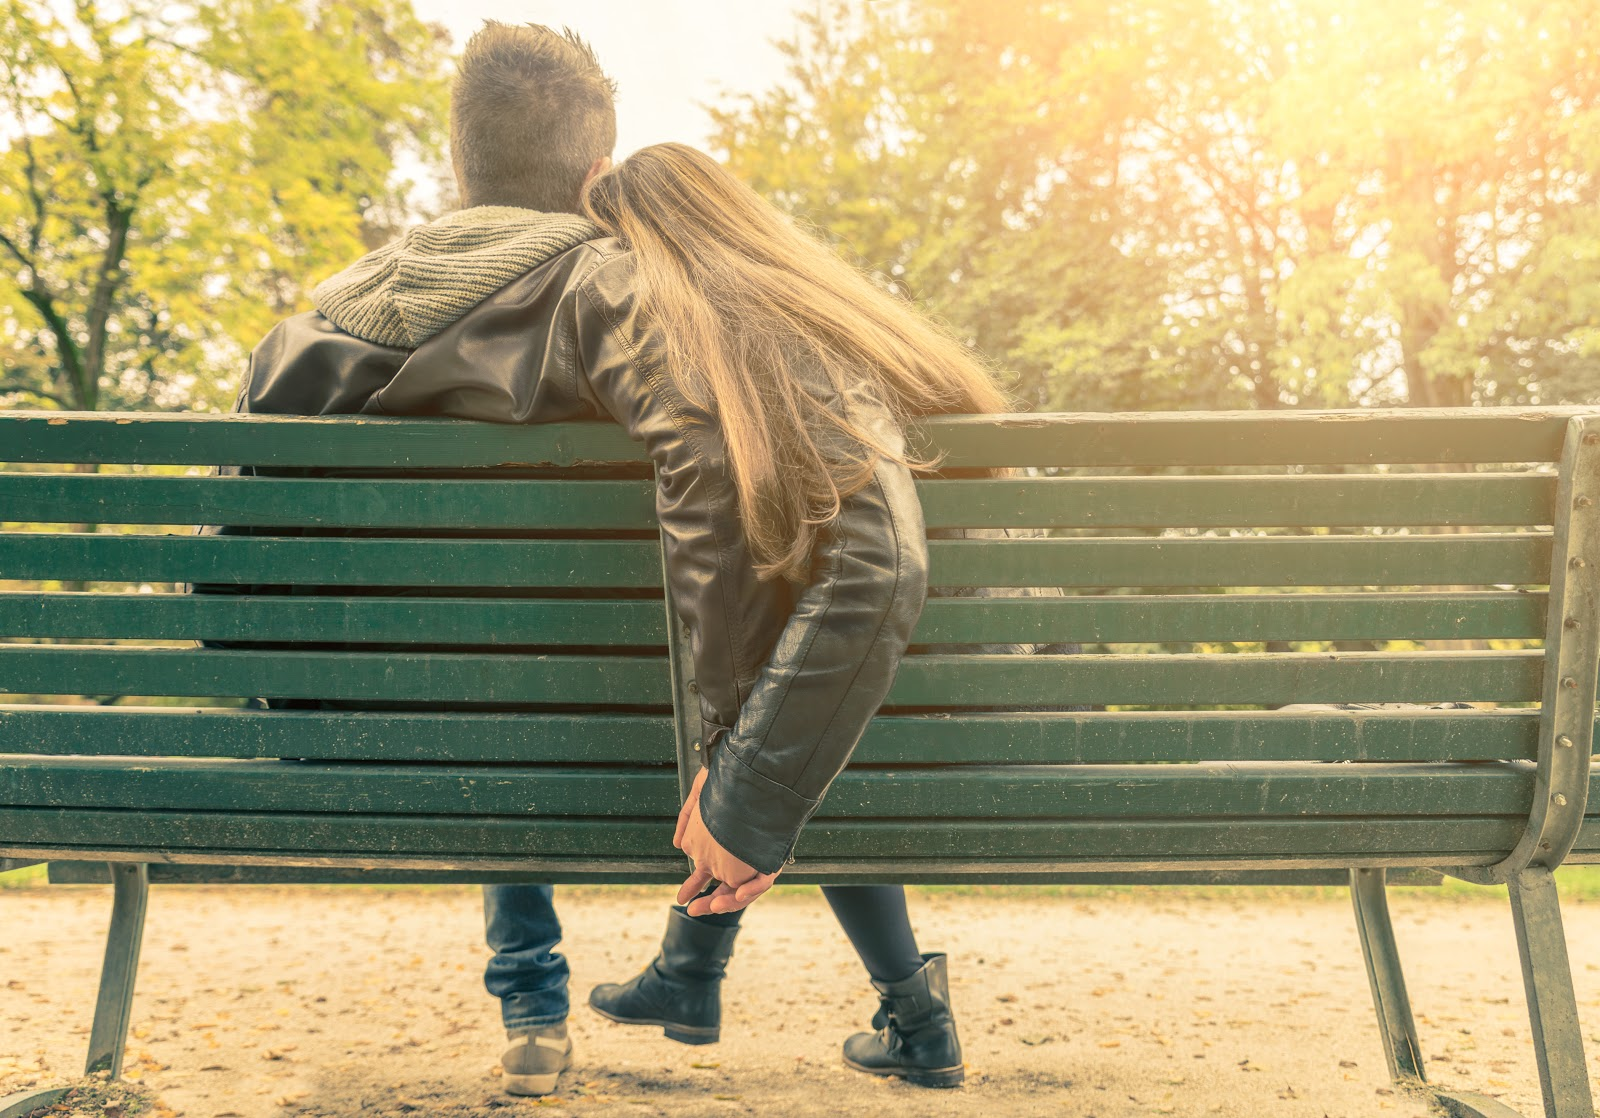 Woman and man cuddling on a park bench